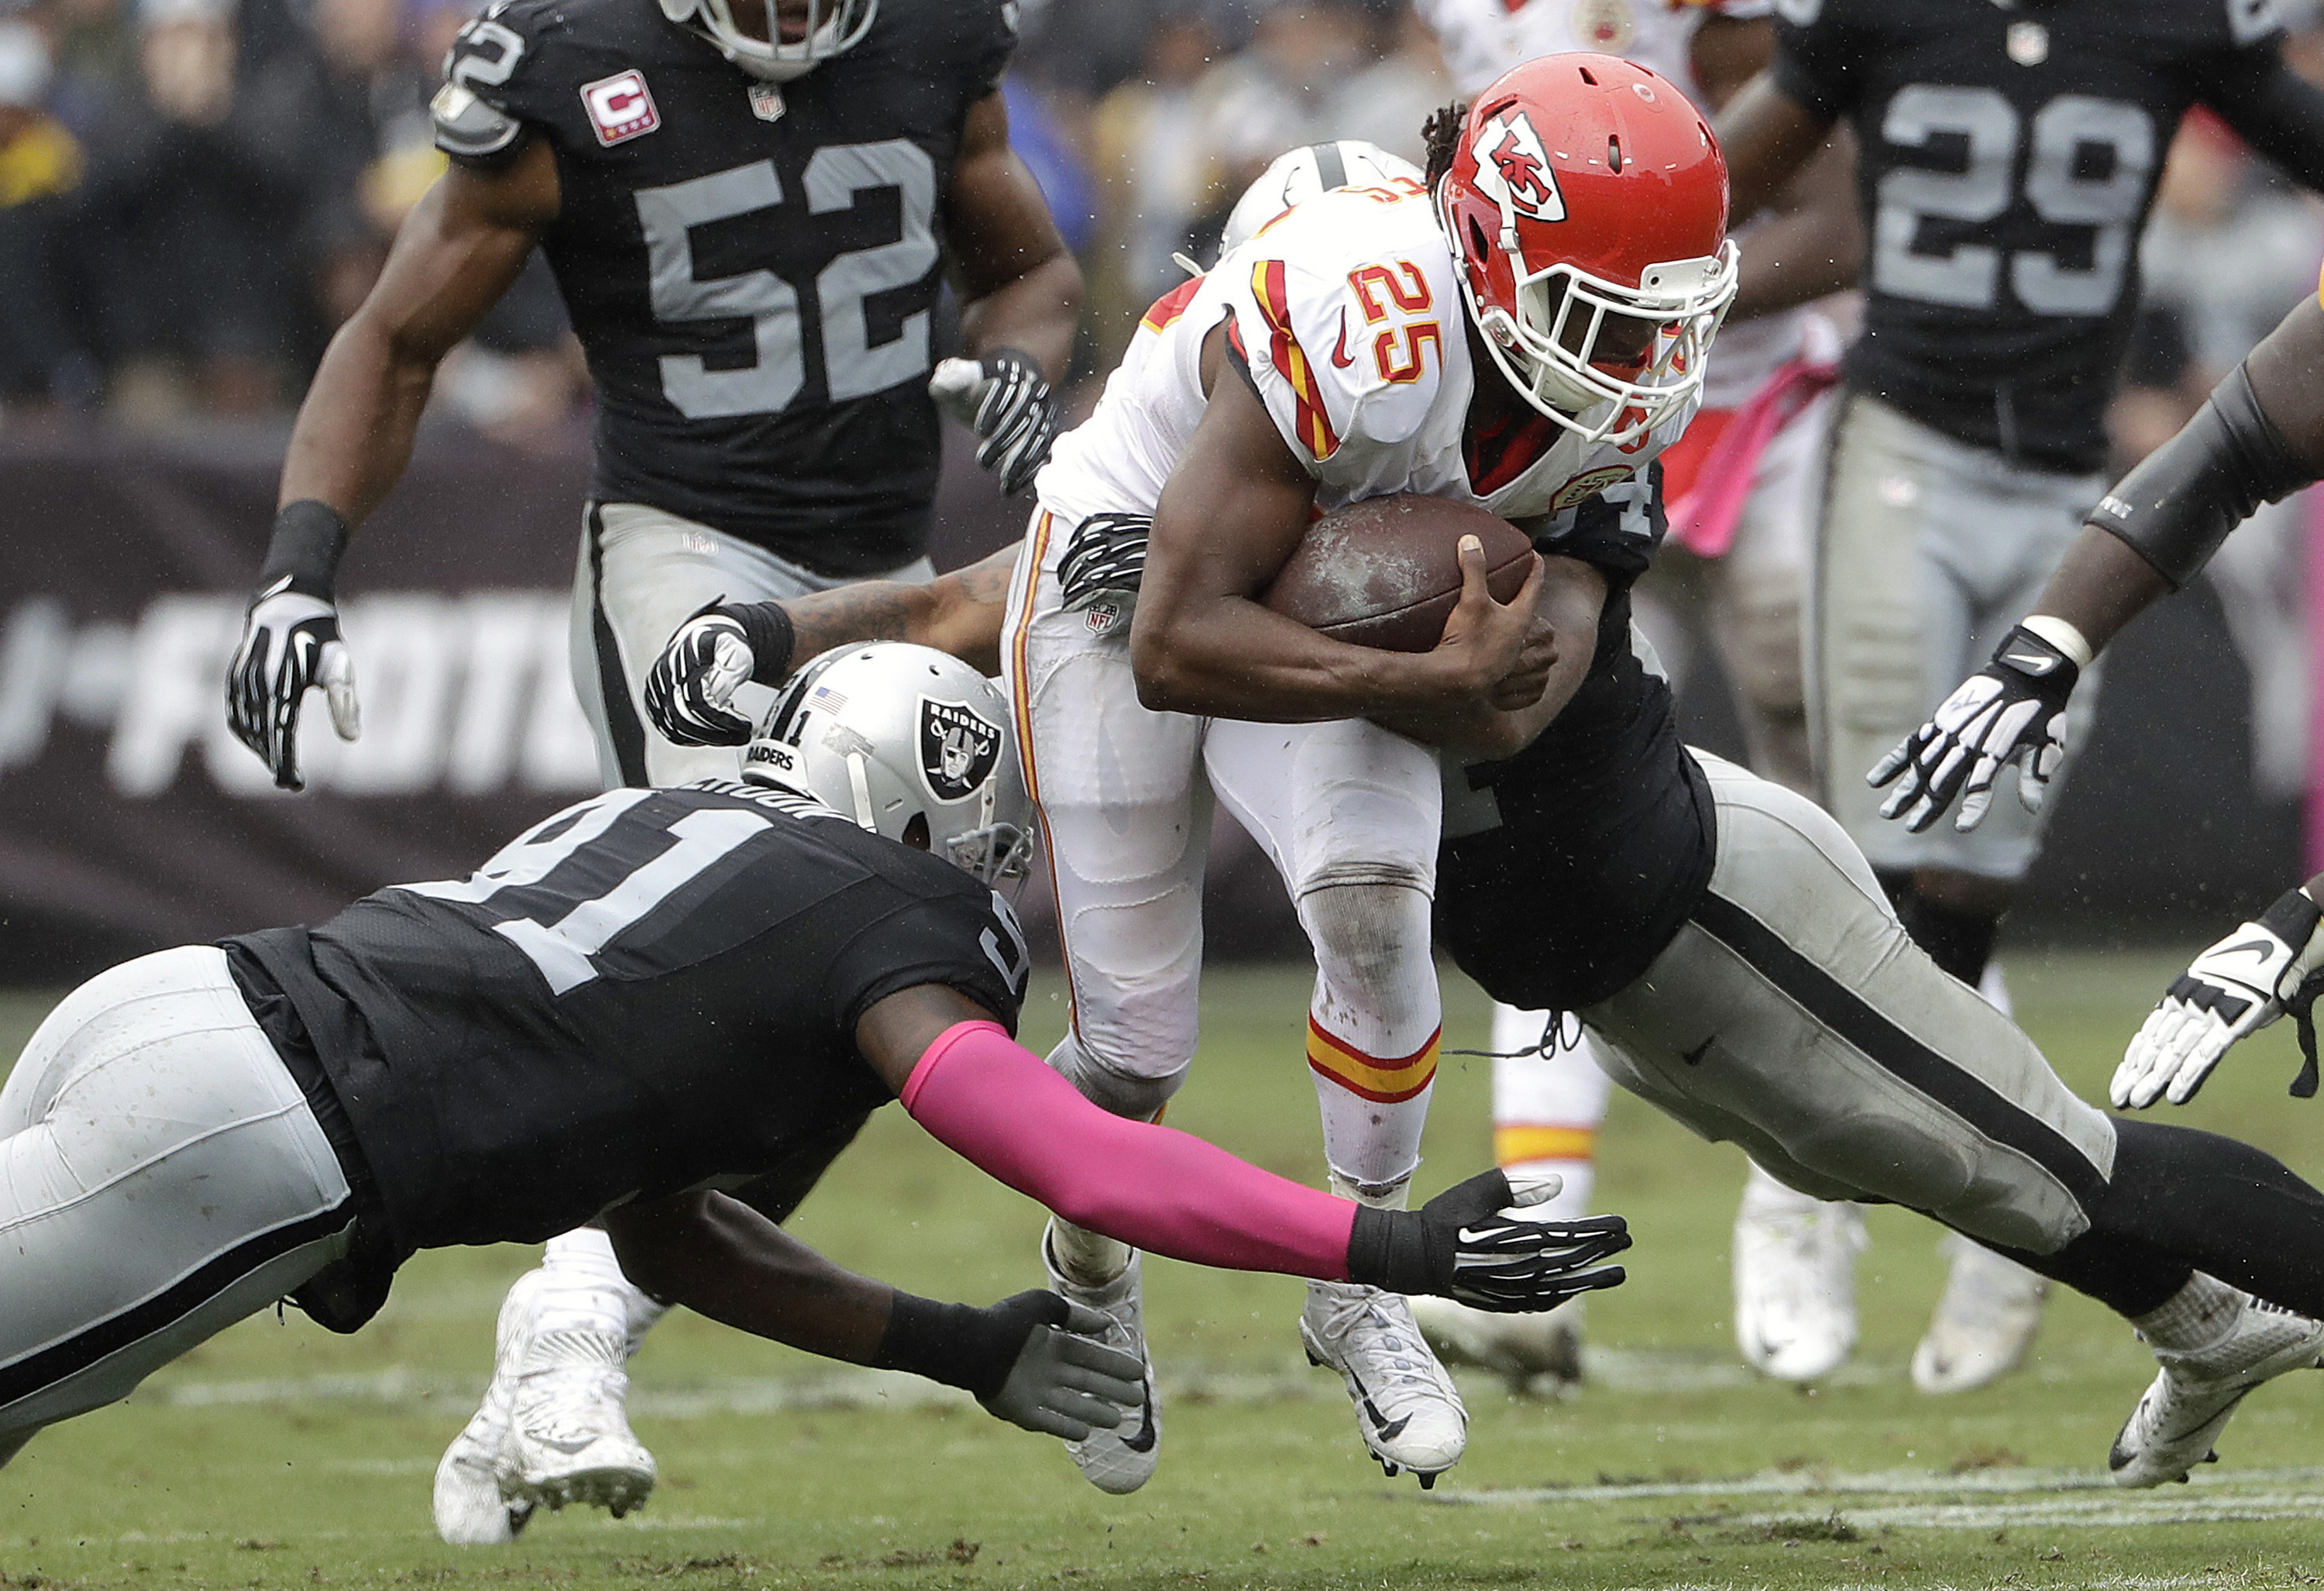 Kansas City Chiefs running back Jamaal Charles (25) runs against Oakland Raiders linebacker Shilique Calhoun, left, and linebacker Perry Riley Jr. during the first half of an NFL football game in Oakland, Calif., Sunday, Oct. 16, 2016. (AP Photo/Marcio Jo